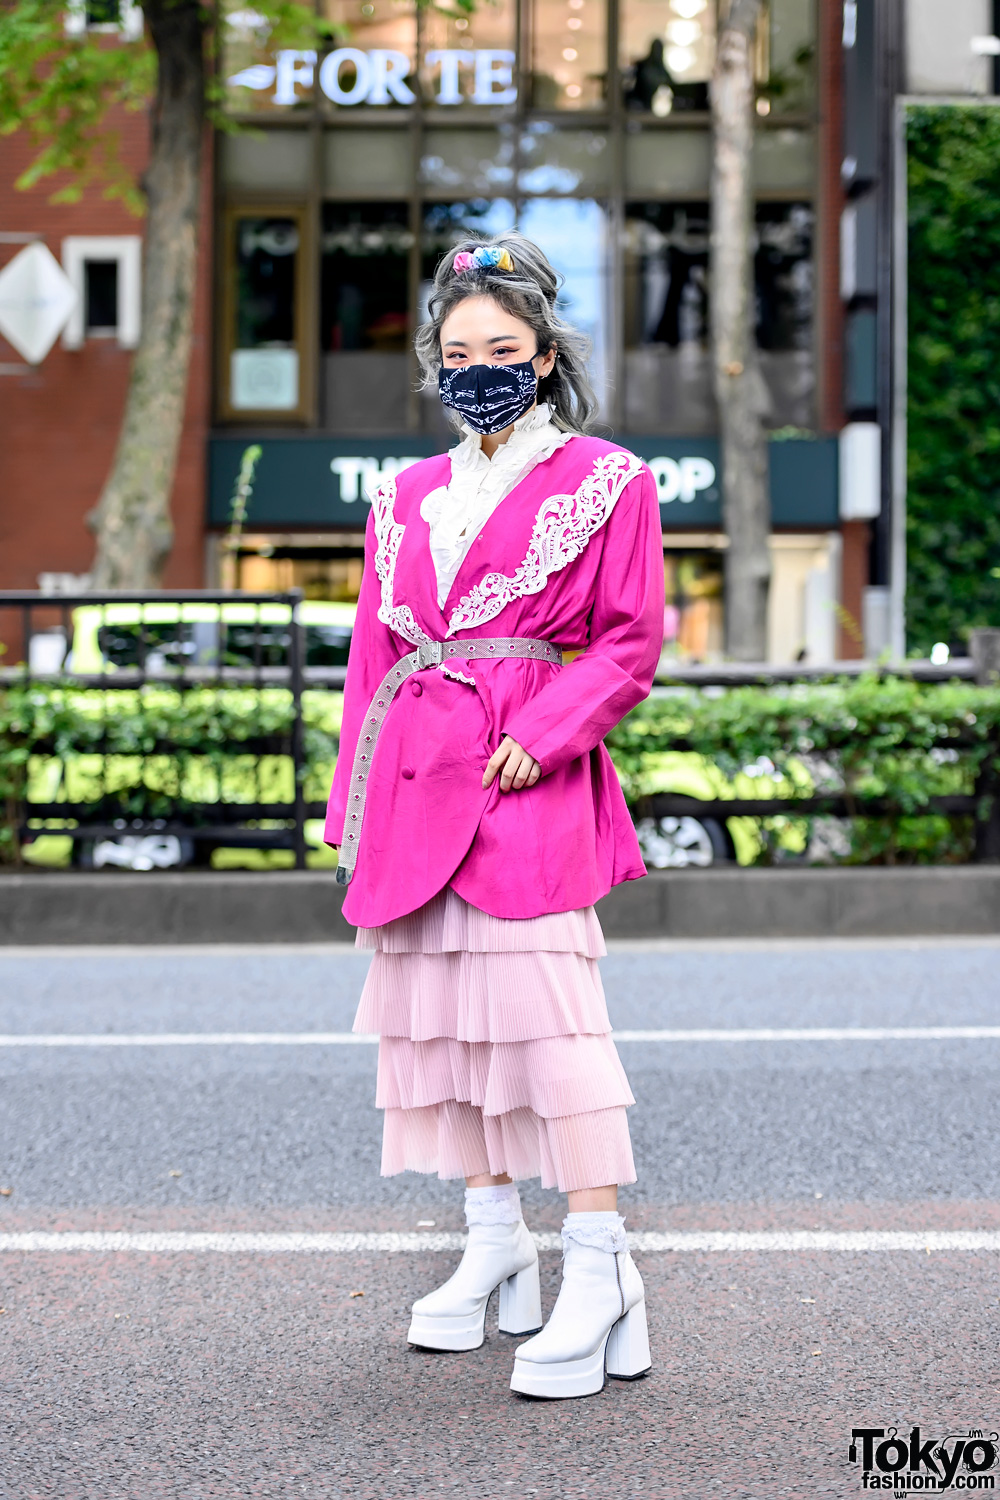 Harajuku Girl in Face Mask and Vintage Pink Fashion